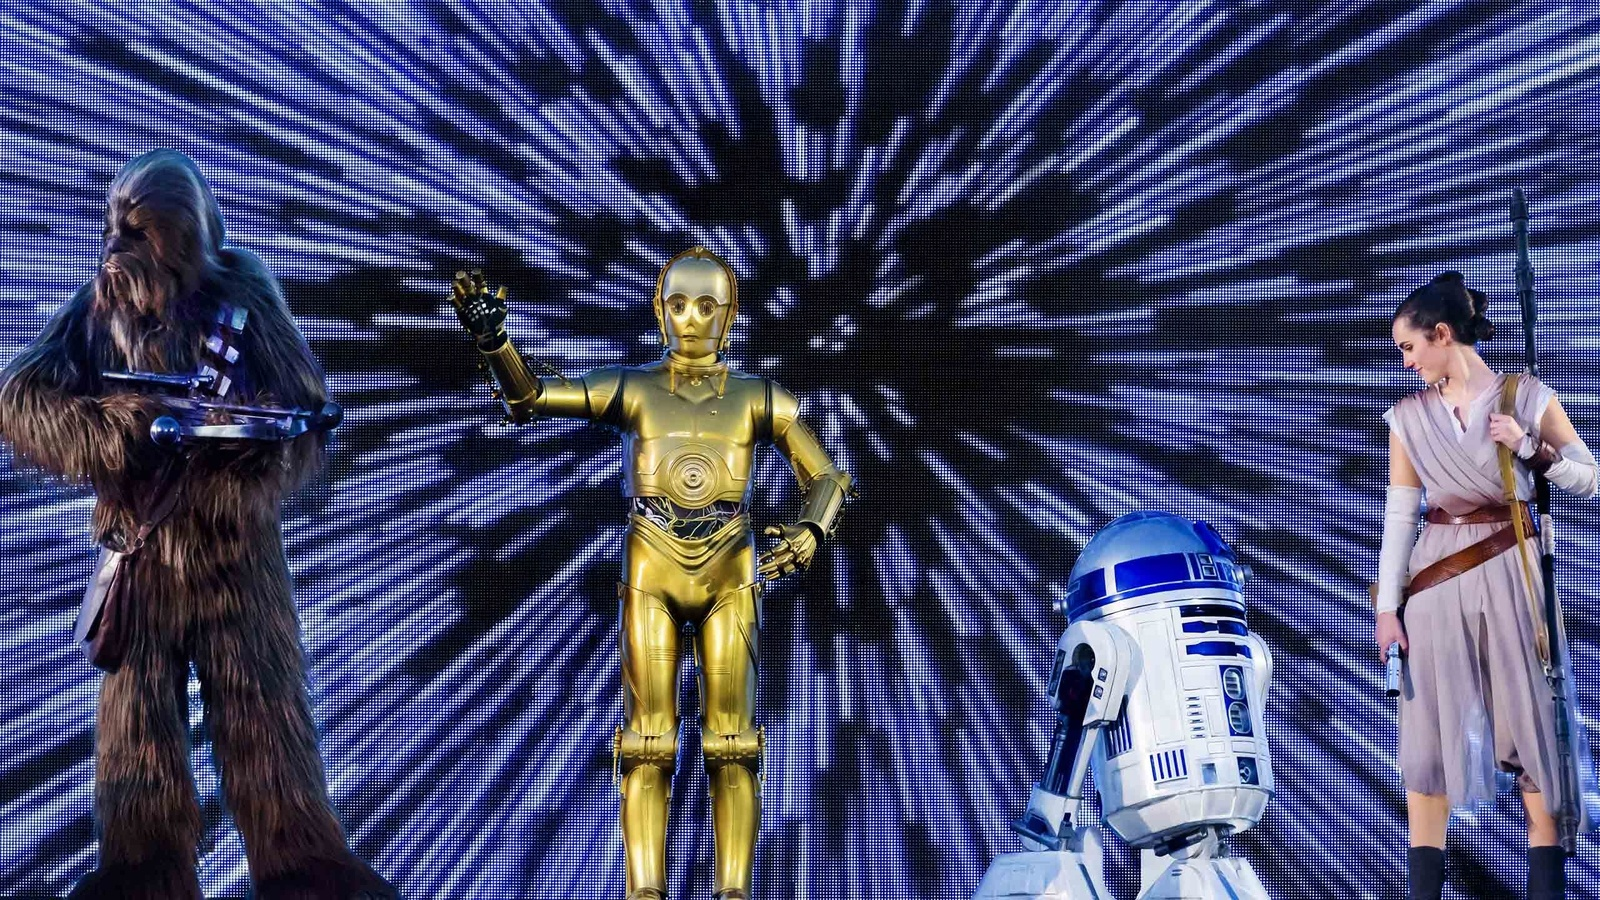 ob_f5efce_n027741-2025jan13-world-star-wars-show.jpg